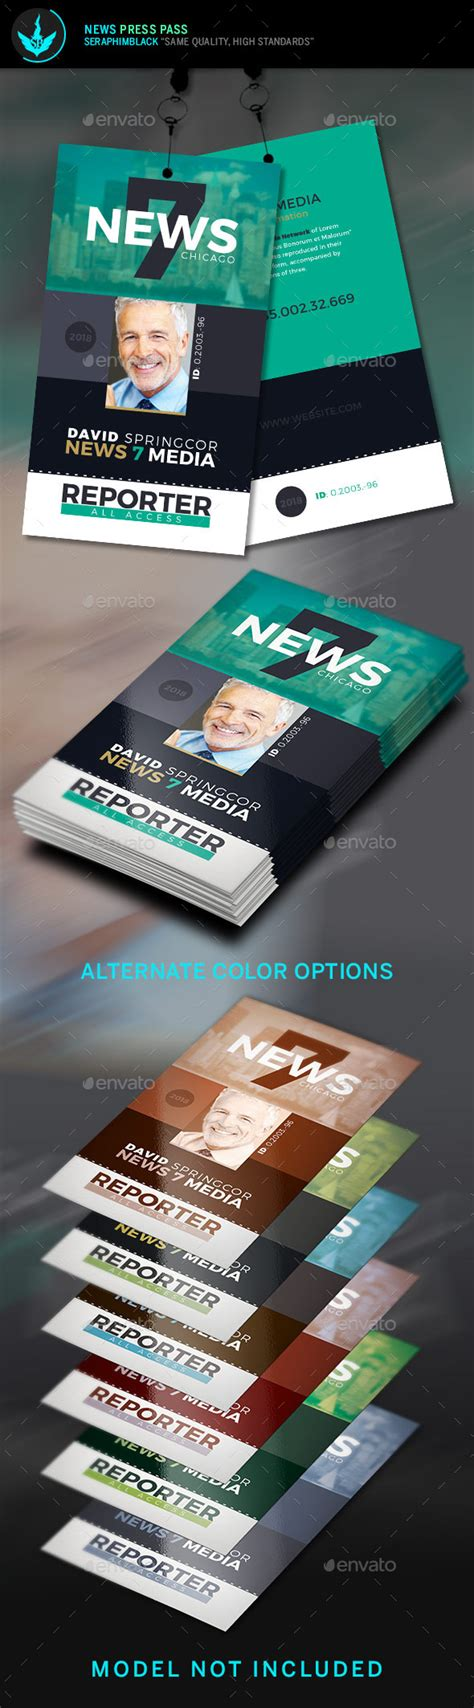 Press Pass Template By Seraphimblack Graphicriver Media Pass Template Photoshop